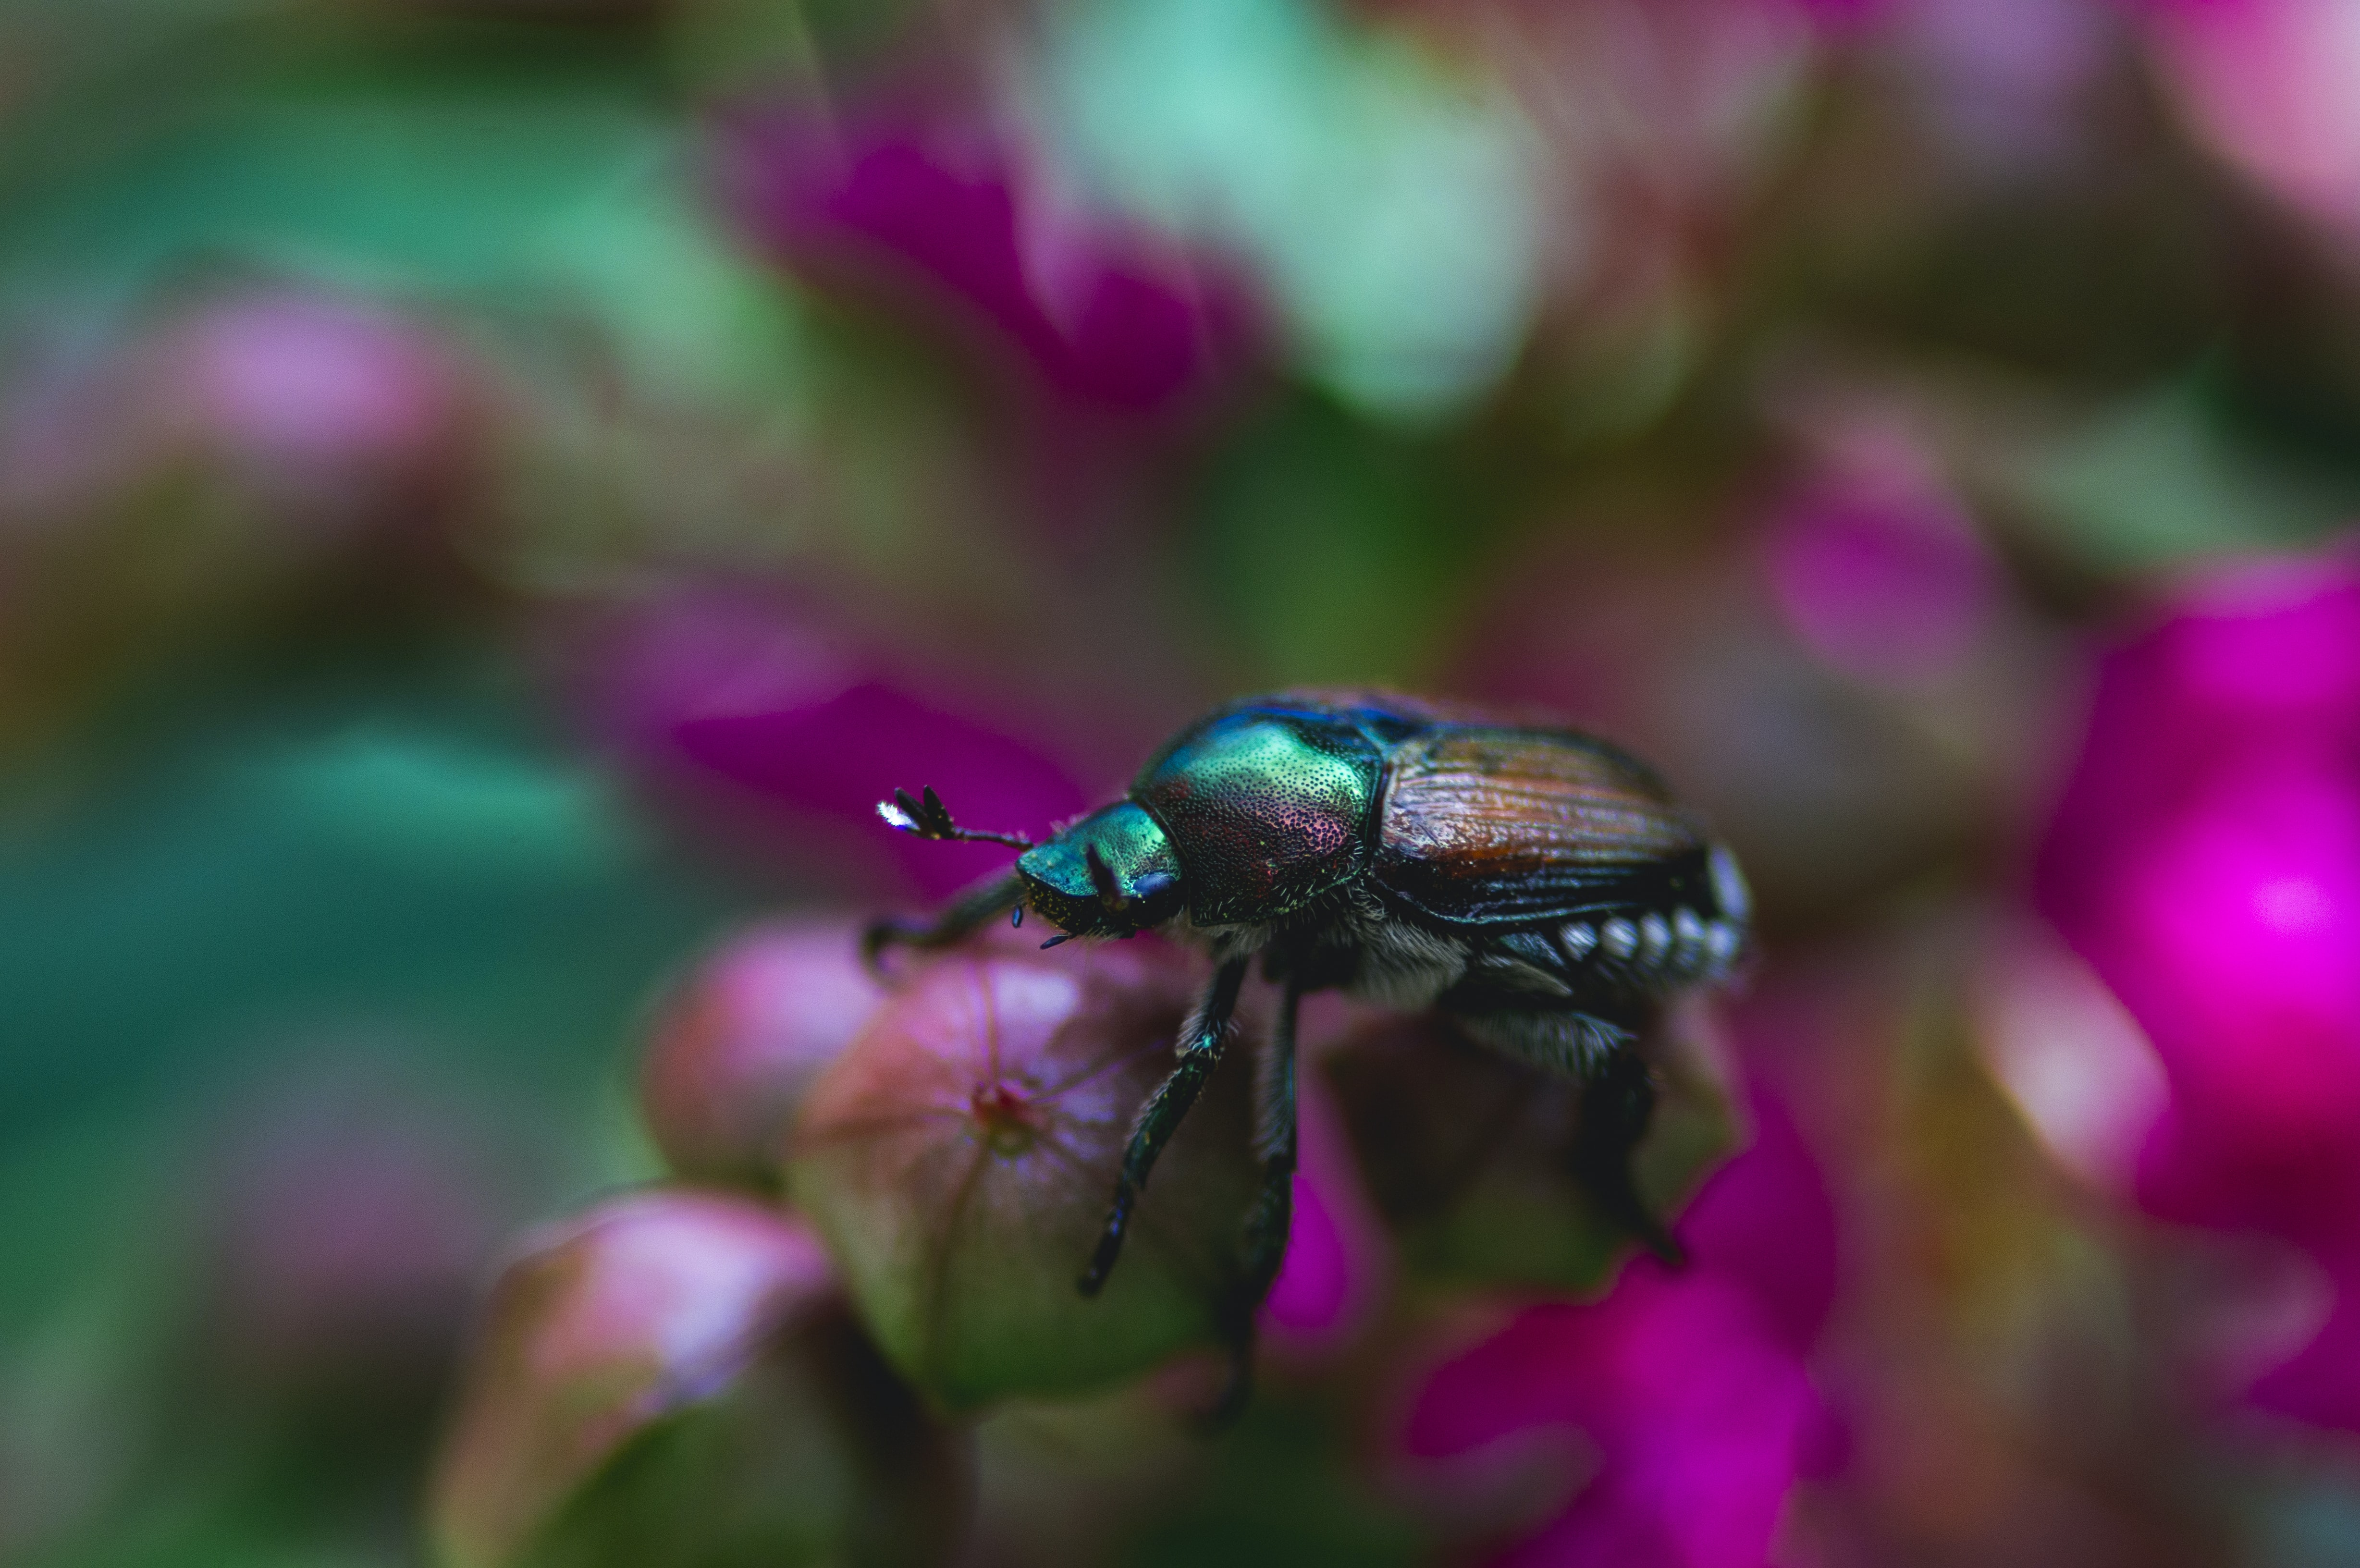 shallow focus photography of black and green bug on pink flower